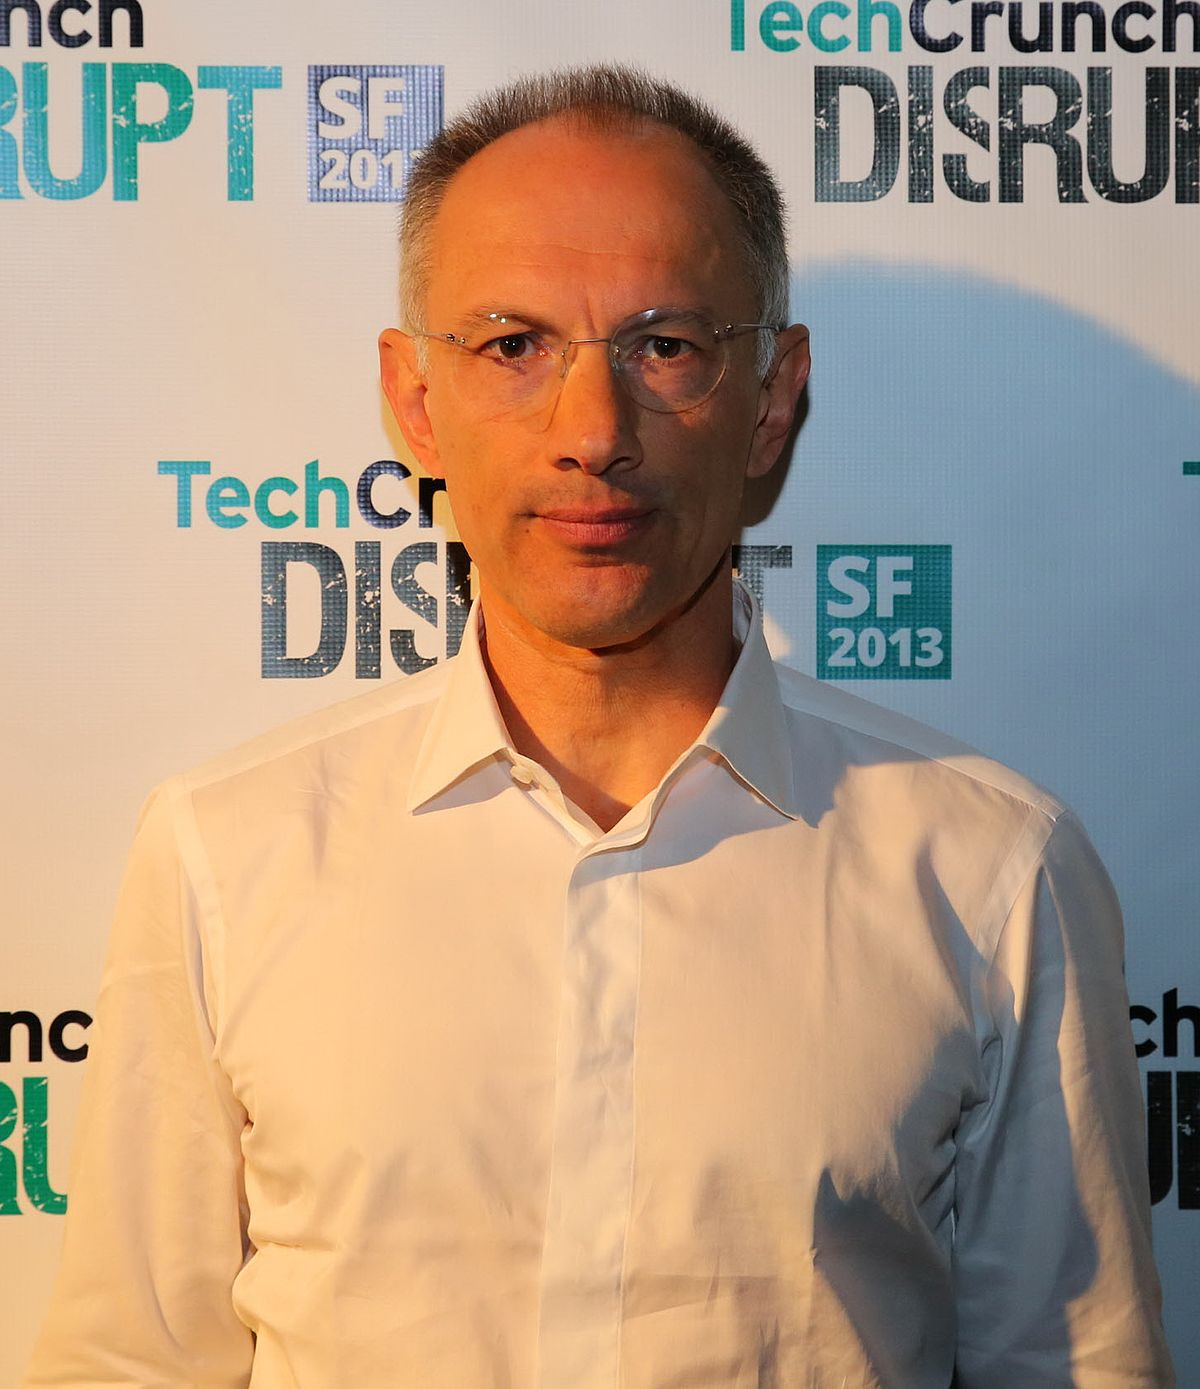 University San Francisco >> Michael Moritz - Wikipedia